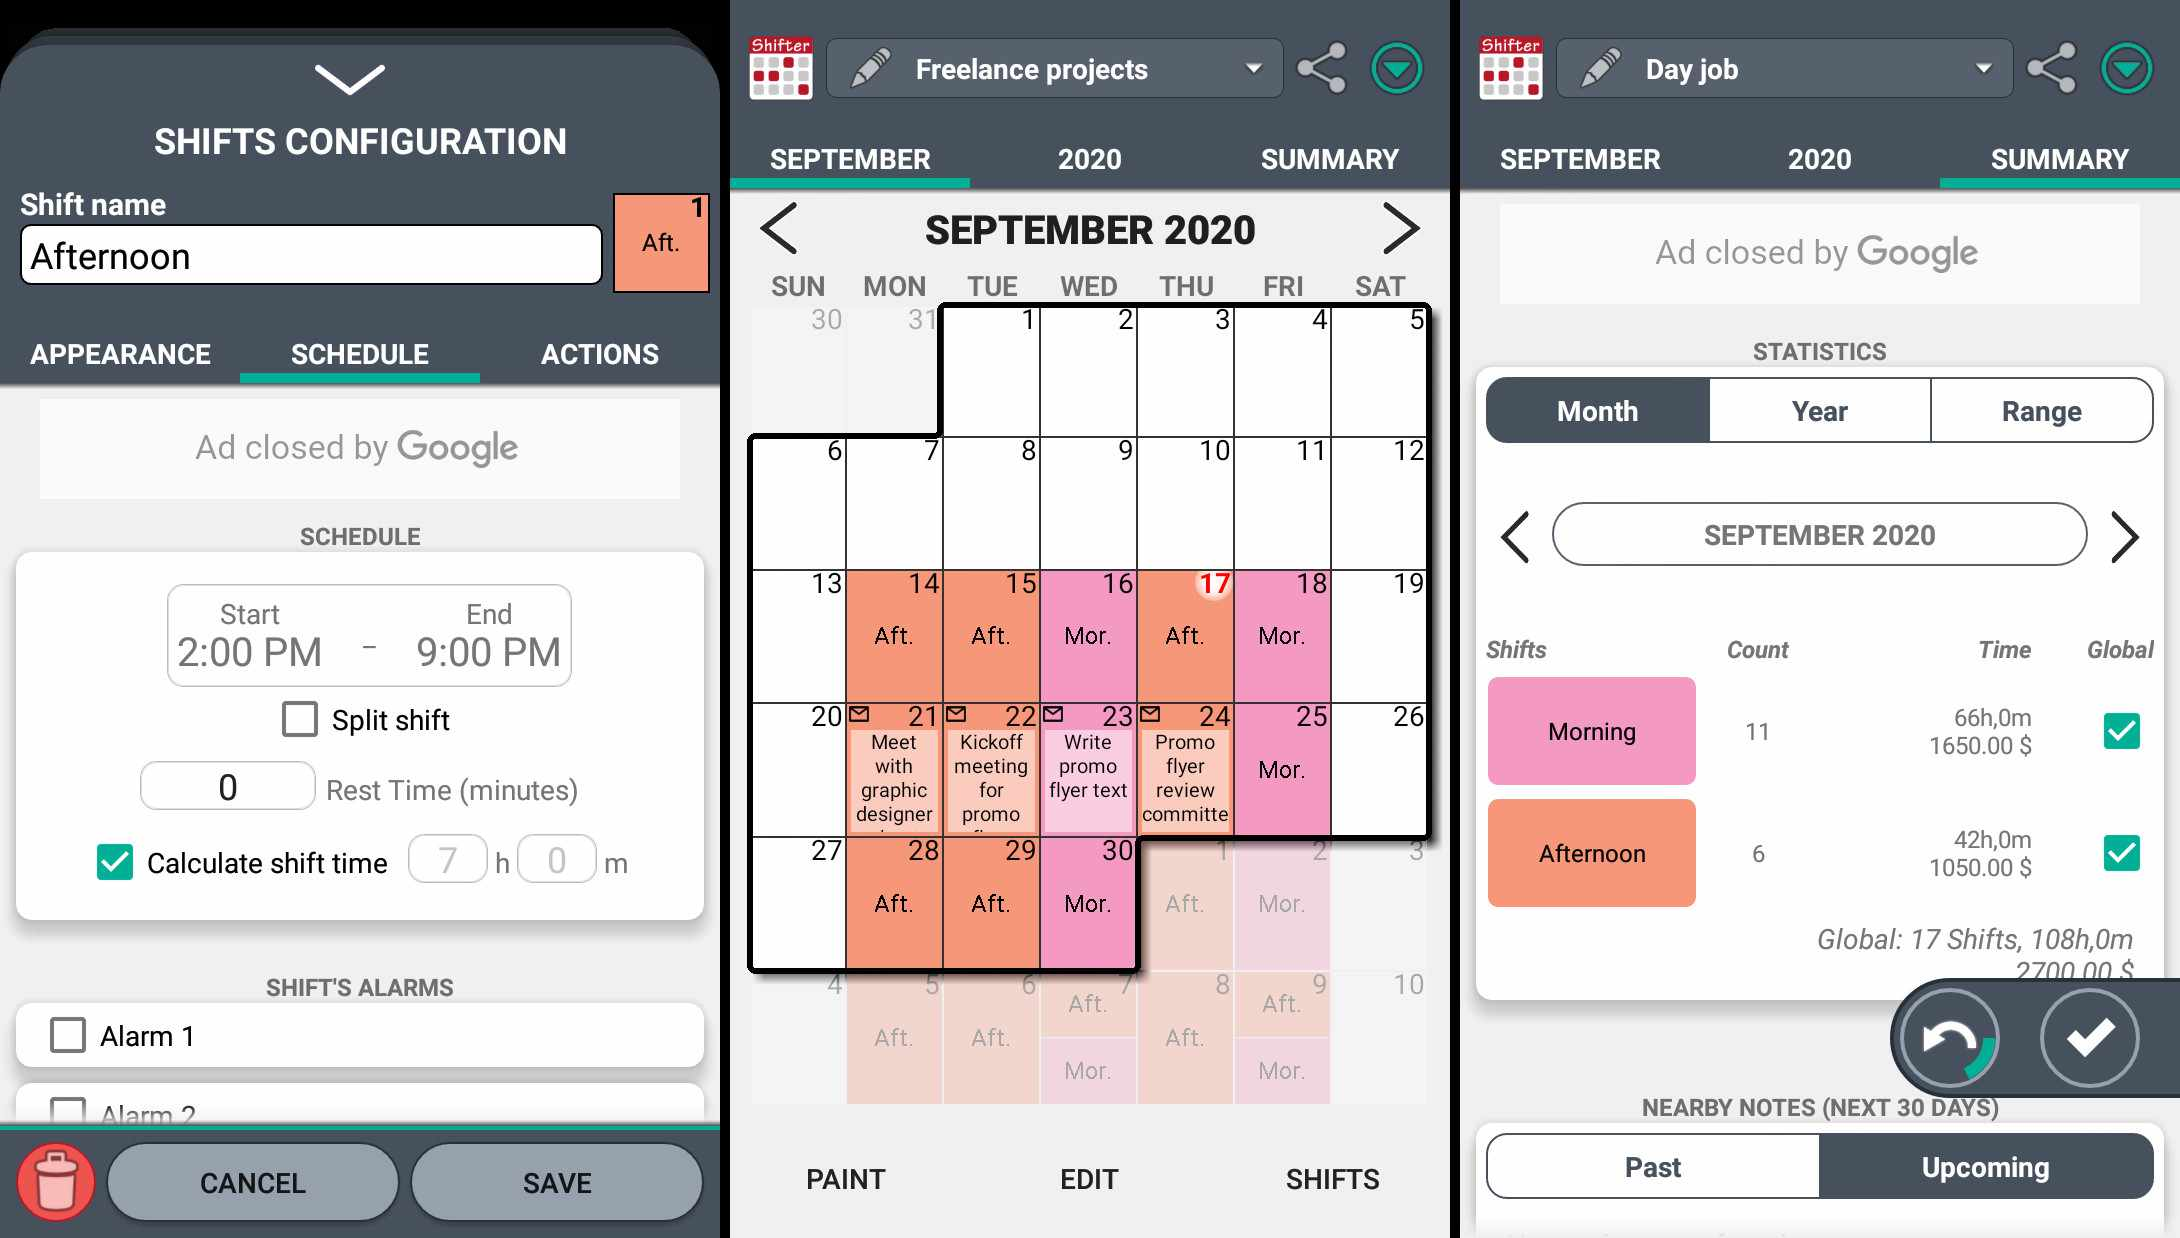 Use Shifter to set up shifts, view schedules, and display work and income summaries